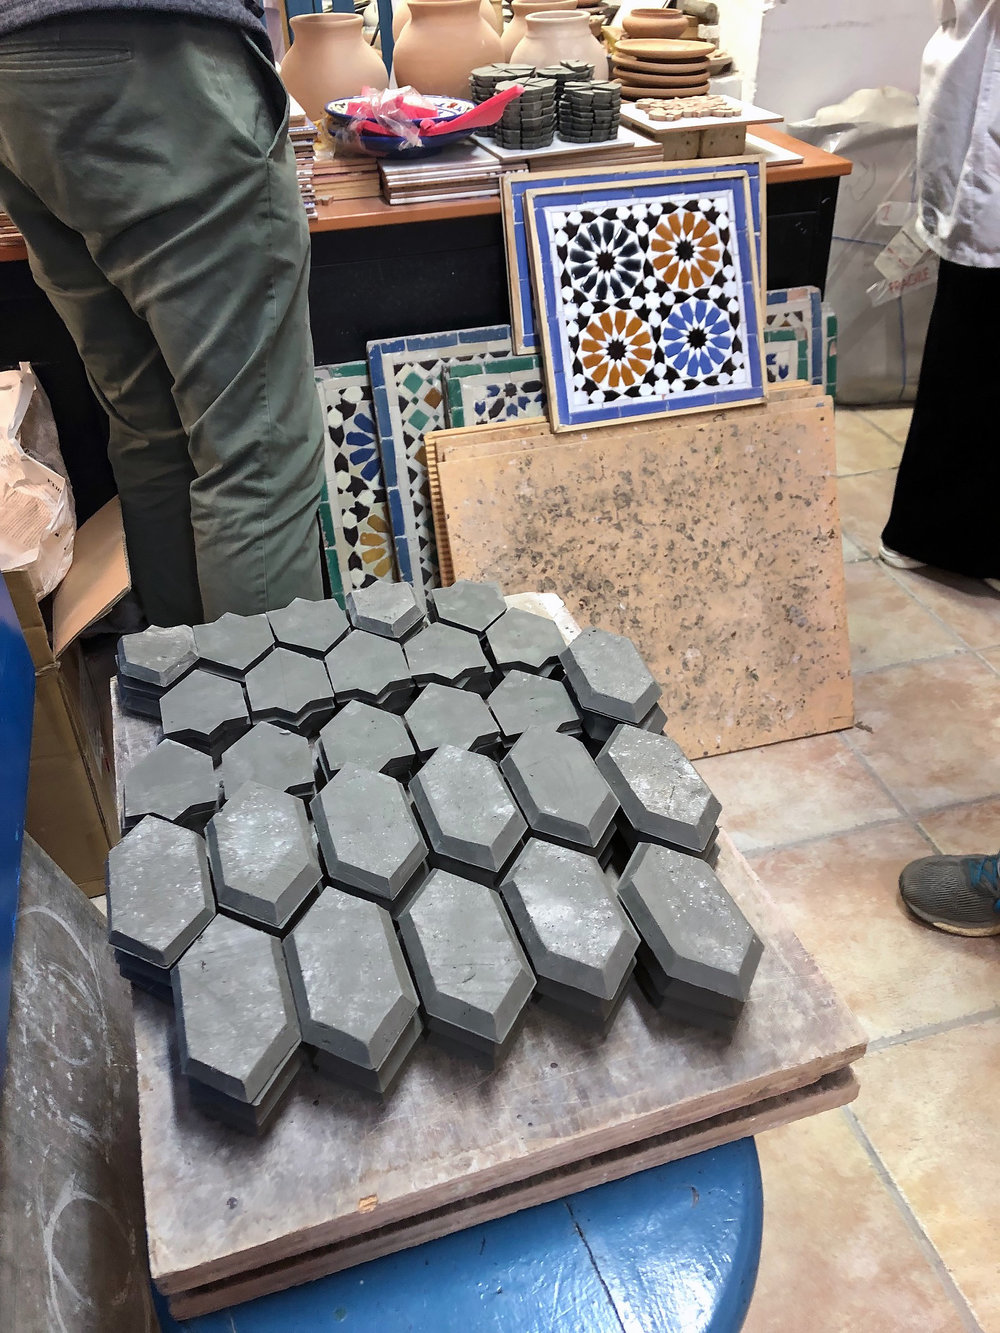 Perfectly cut tiles ready for the kiln